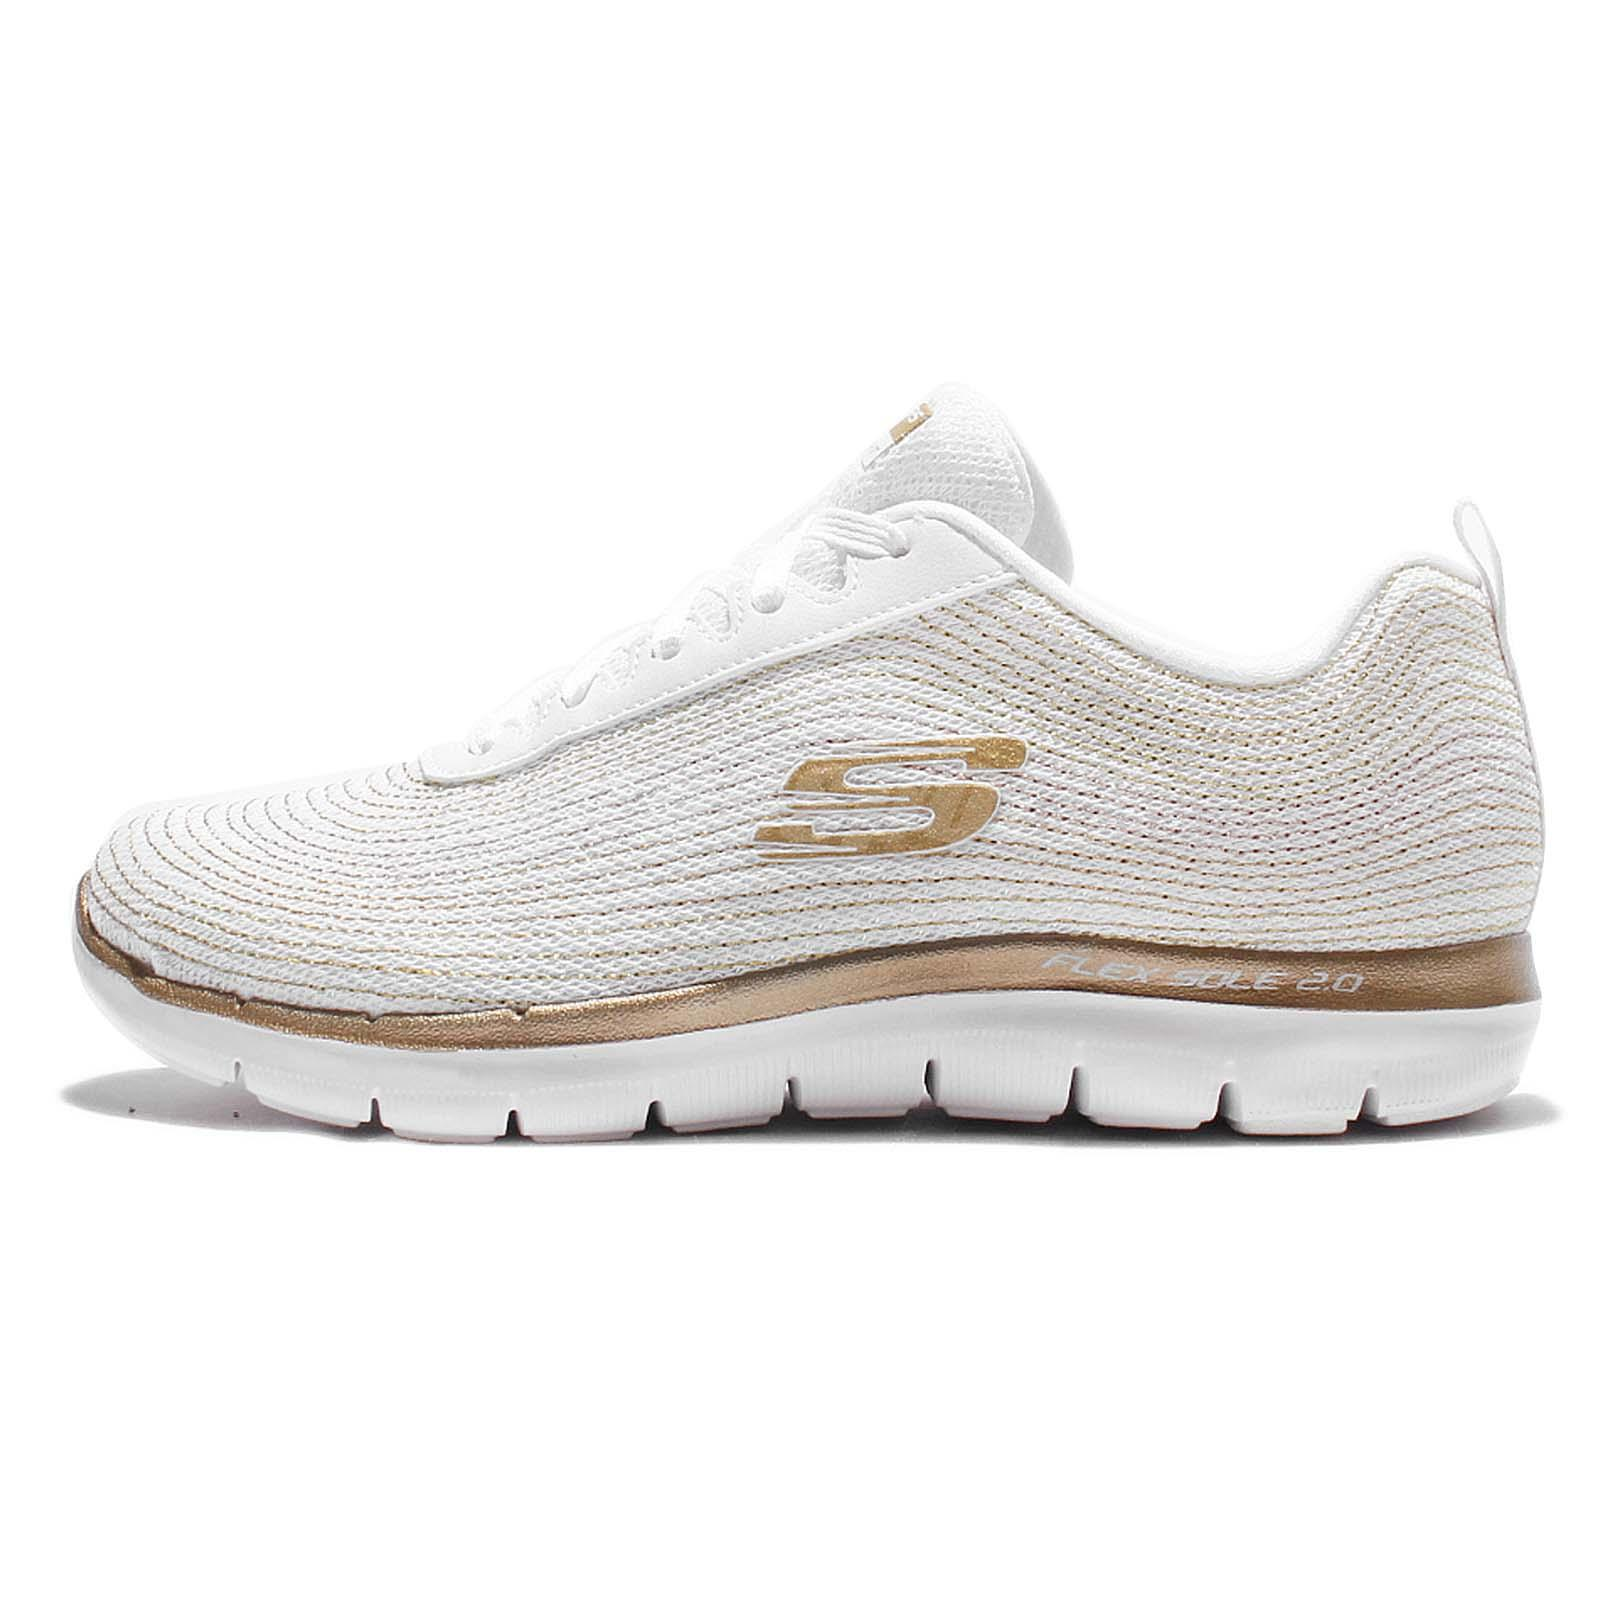 51f7e2ae0 Skechers Flex Appeal 2.0-Metal Madness White Gole Womens Running Shoes  12764-WGD